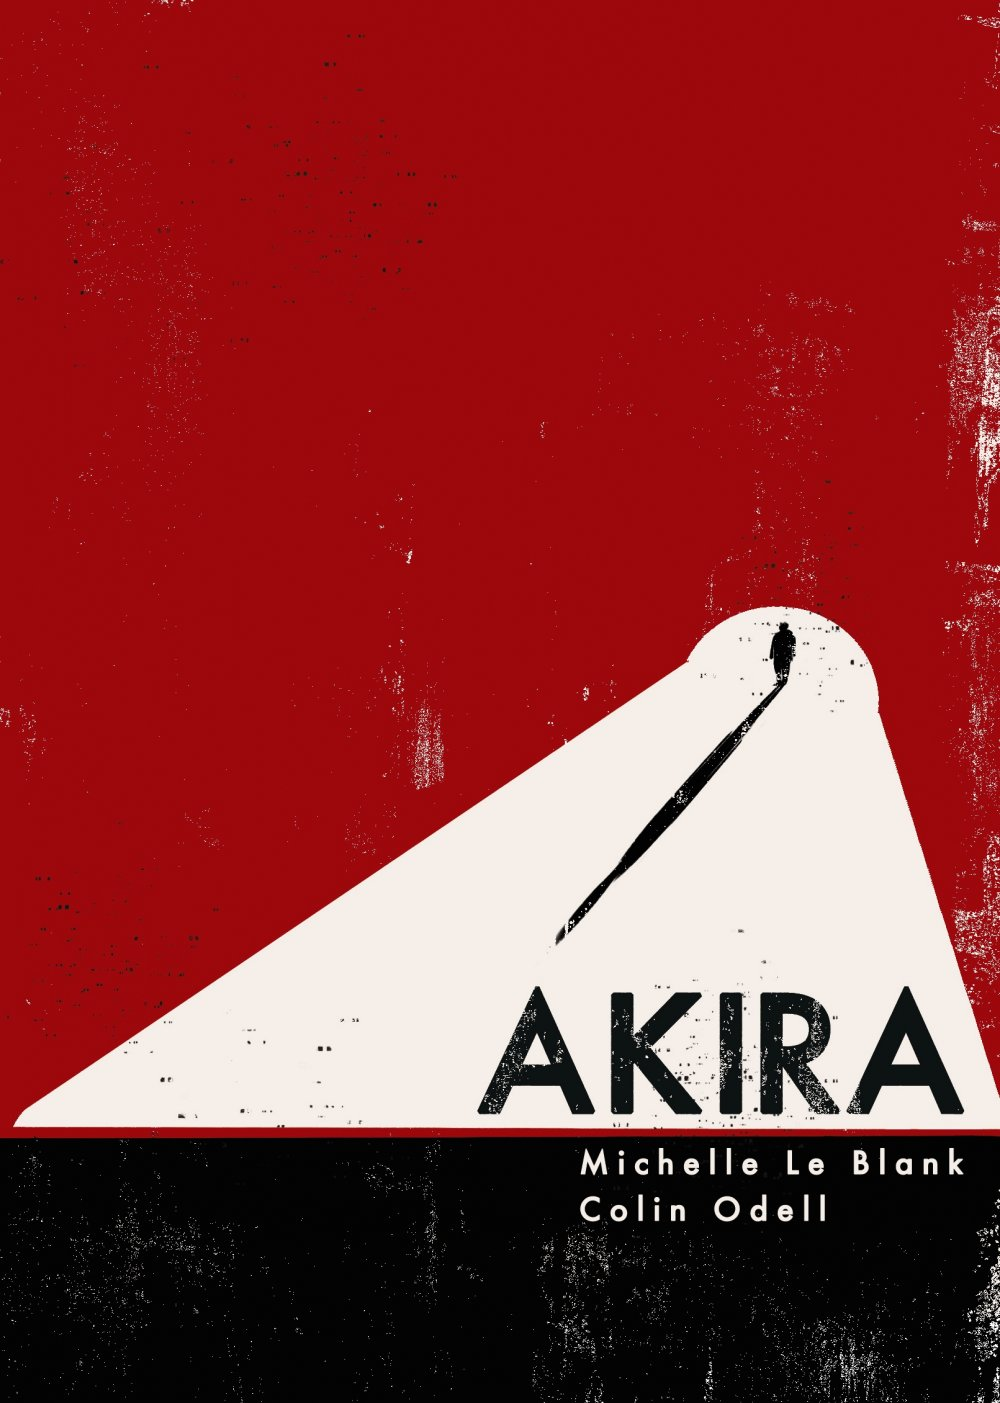 Winning design for the Akira cover by Samantha Holmlund